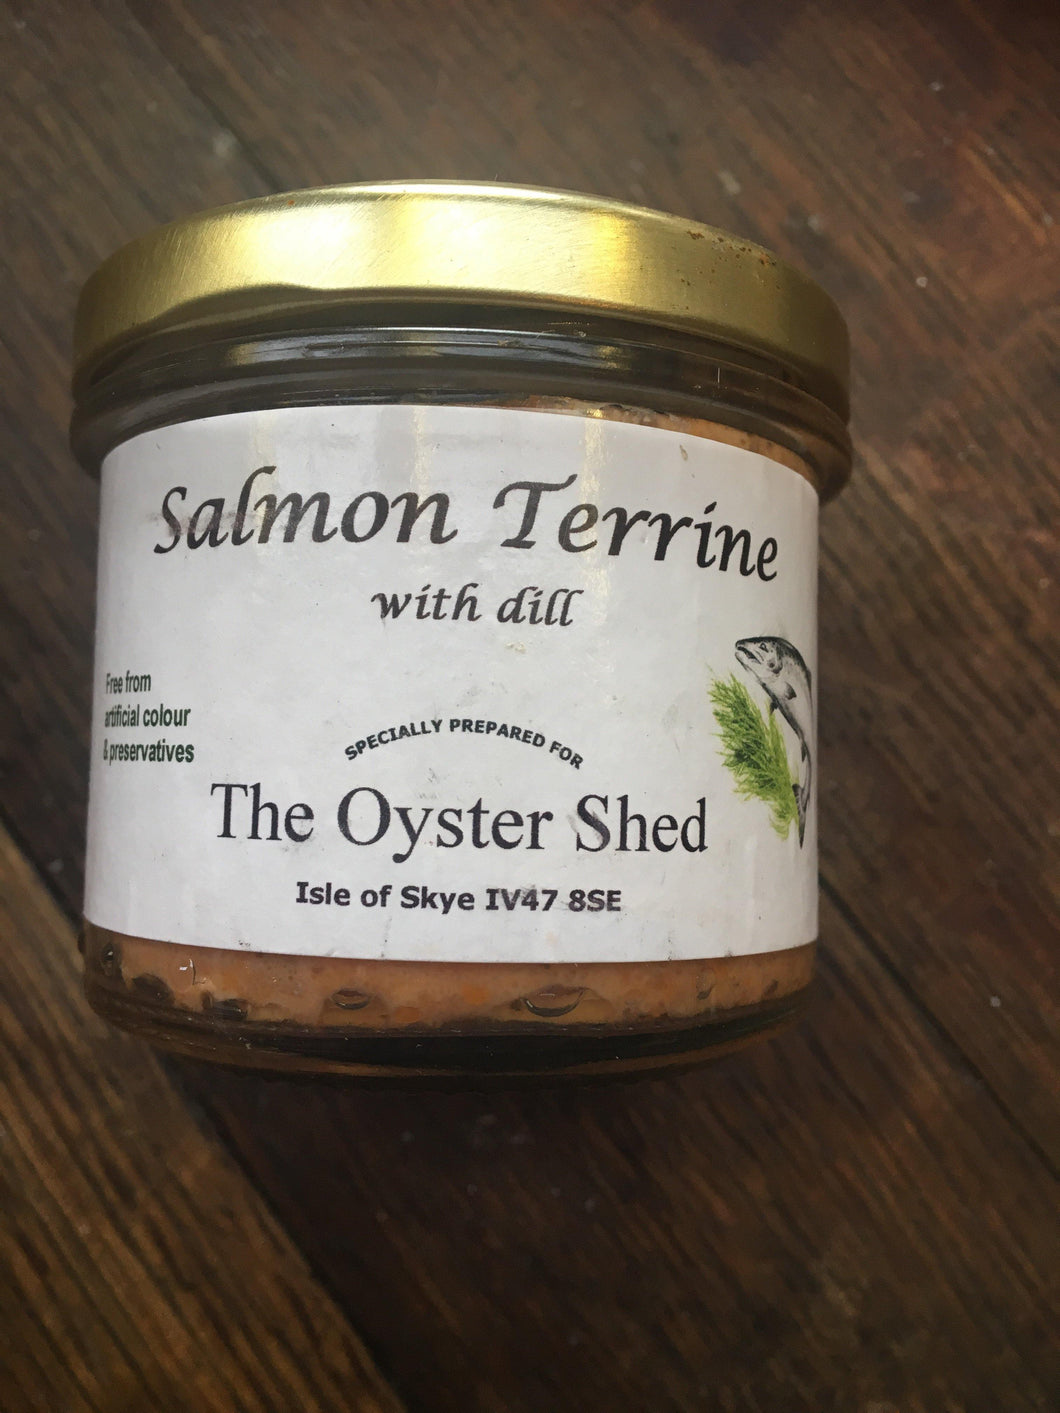 Salmon Terrine with dill - Small - The Oyster Shed